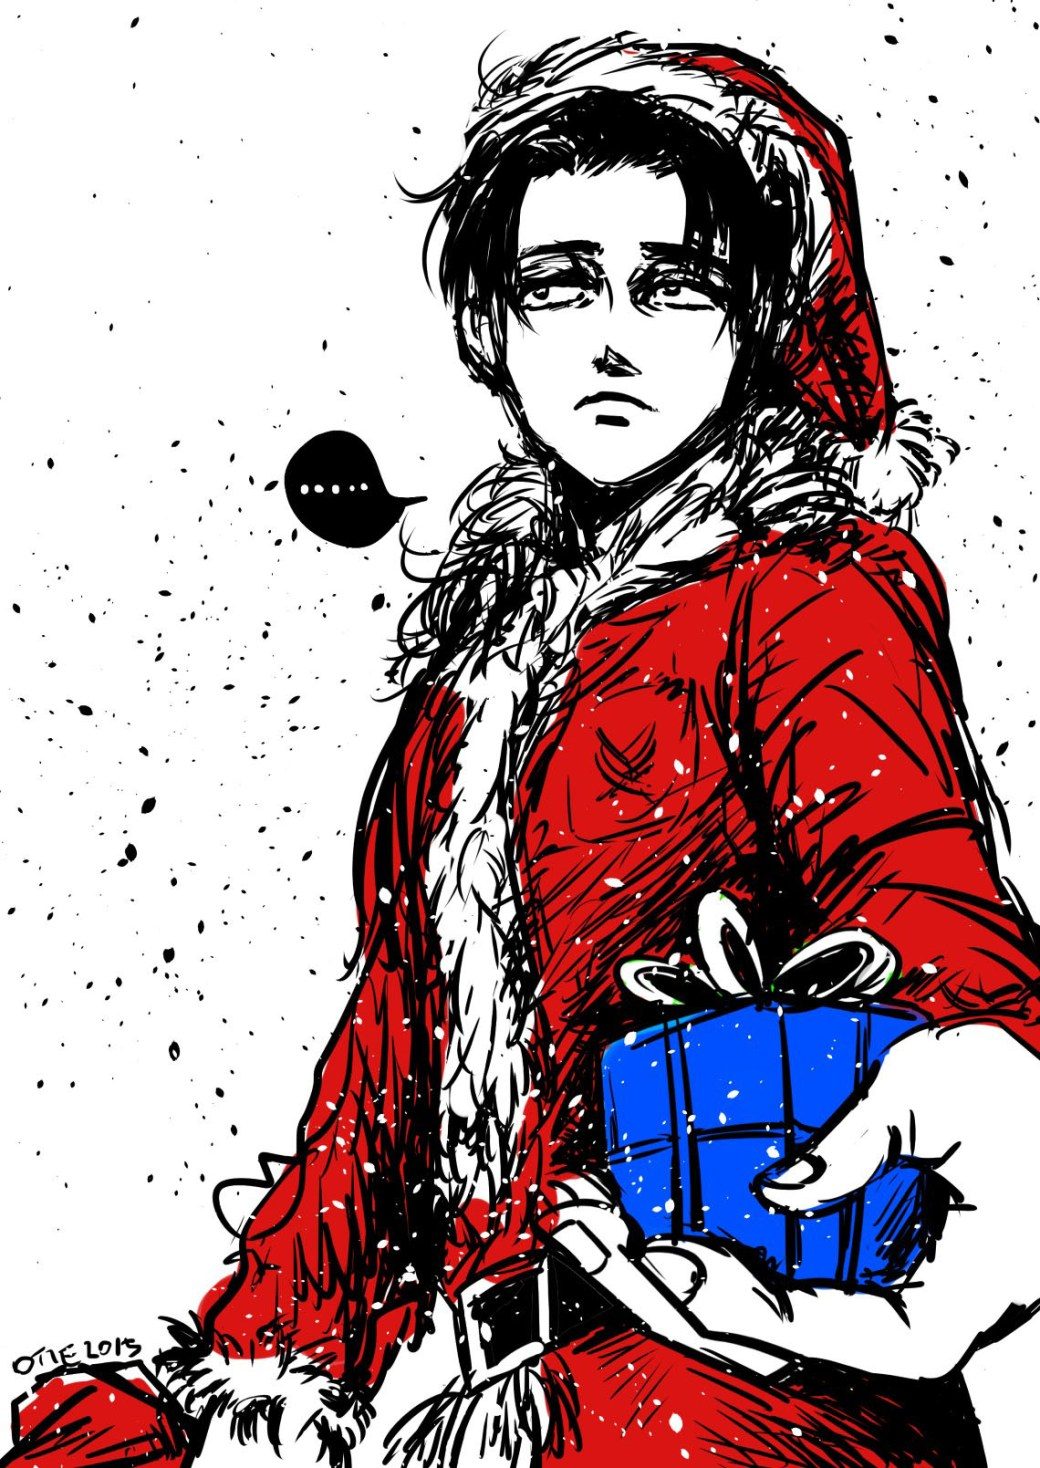 attack on titan xmas 2015